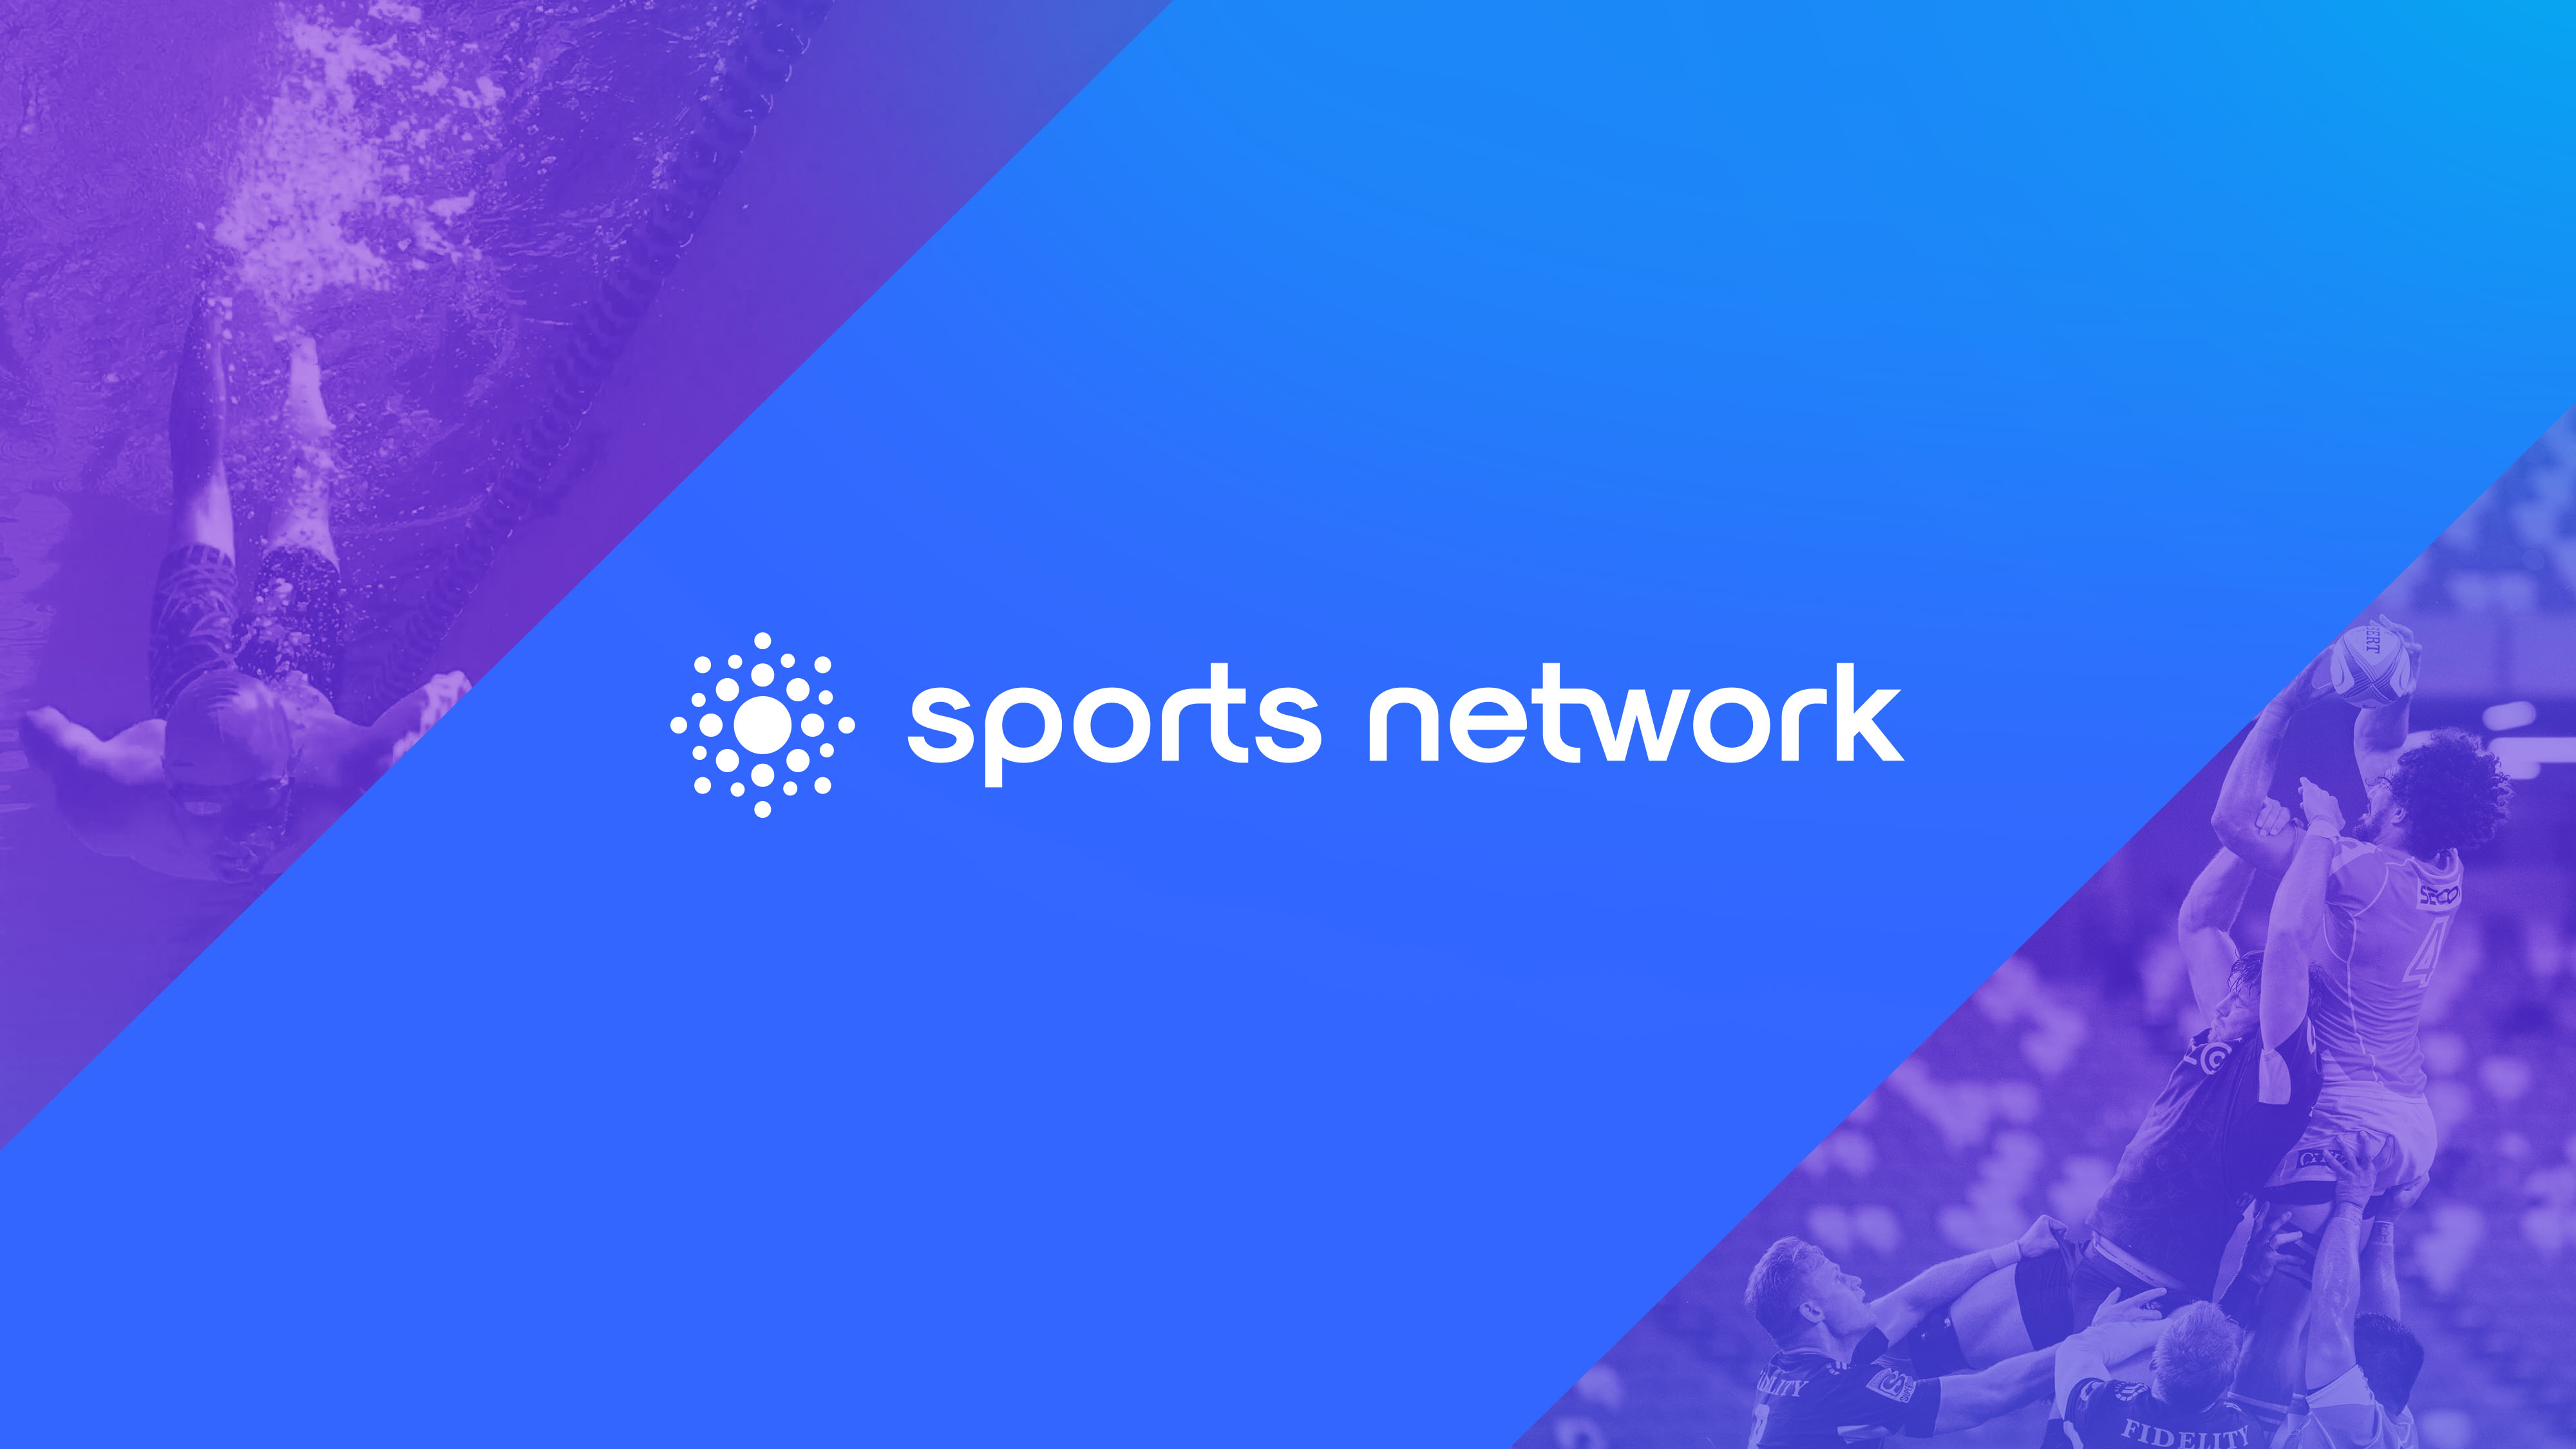 Sports Network Behance Cover Small